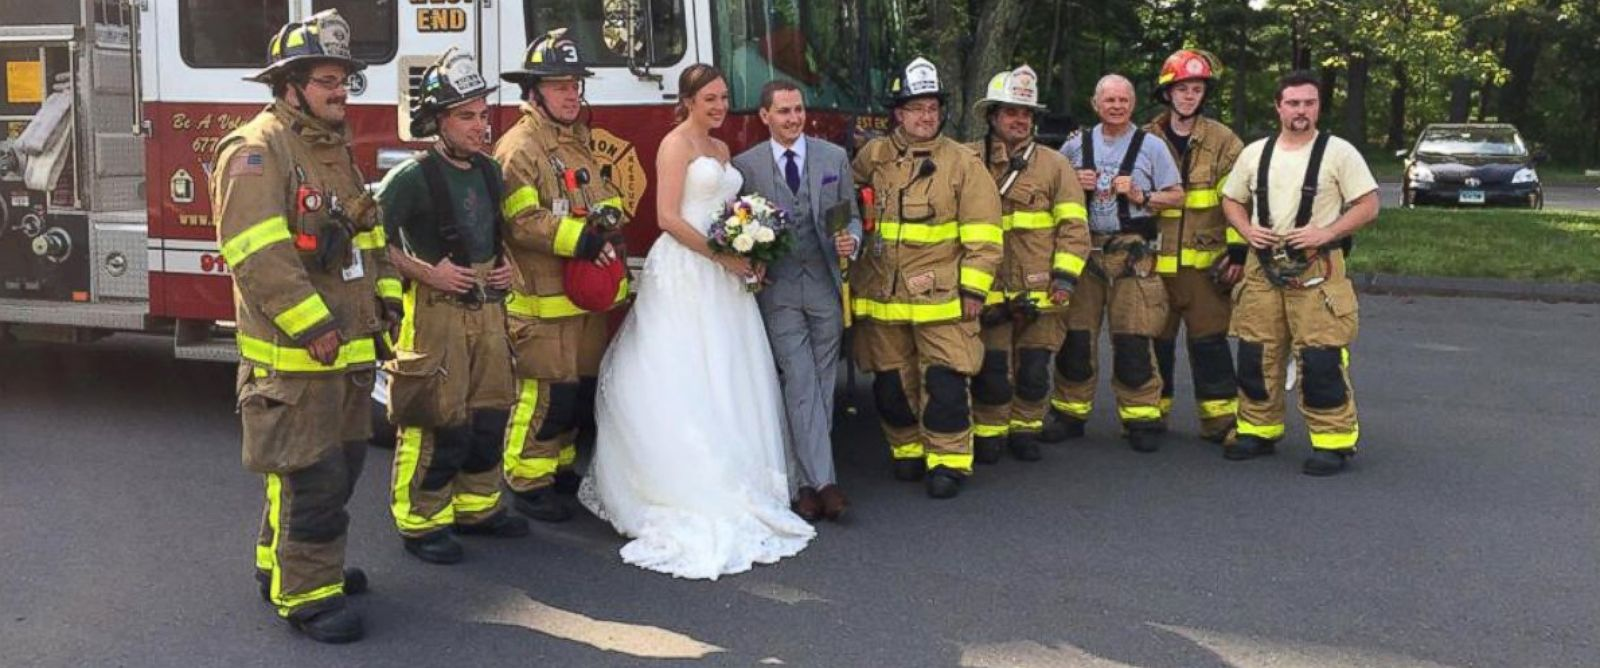 PHOTO: Justin Stone and Maria Leonardi, who wed on Saturday, had to be rescued by the Avon Volunteer Fire Department in Connecticut, after their wedding bus caught fire.